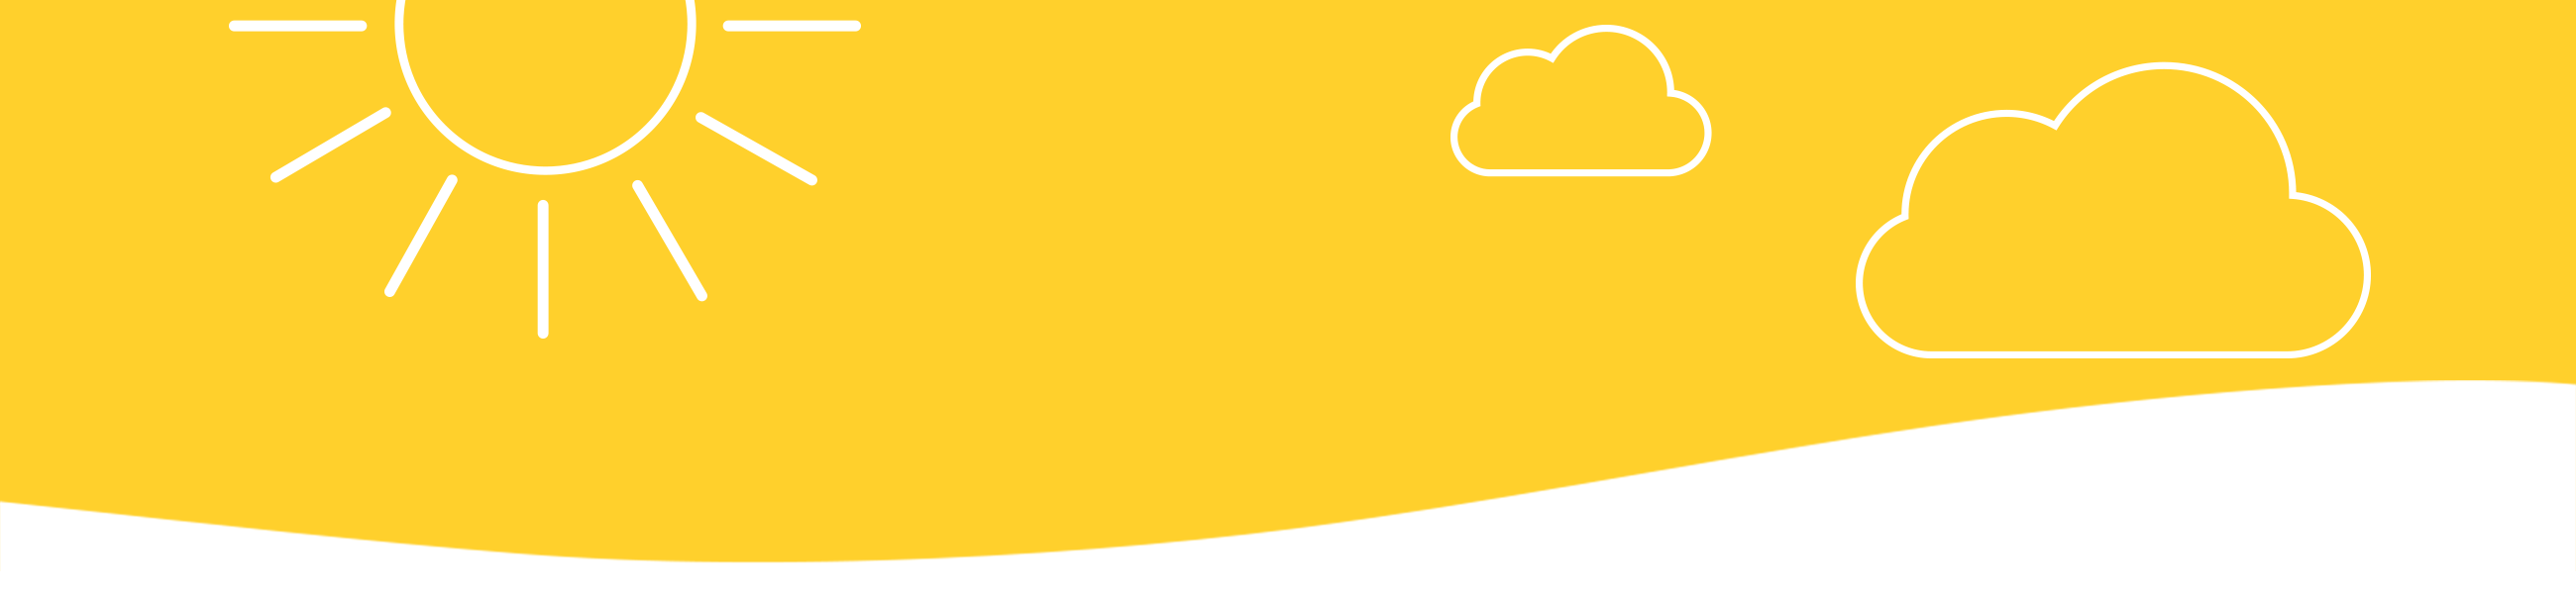 About the Brands Yellow Header